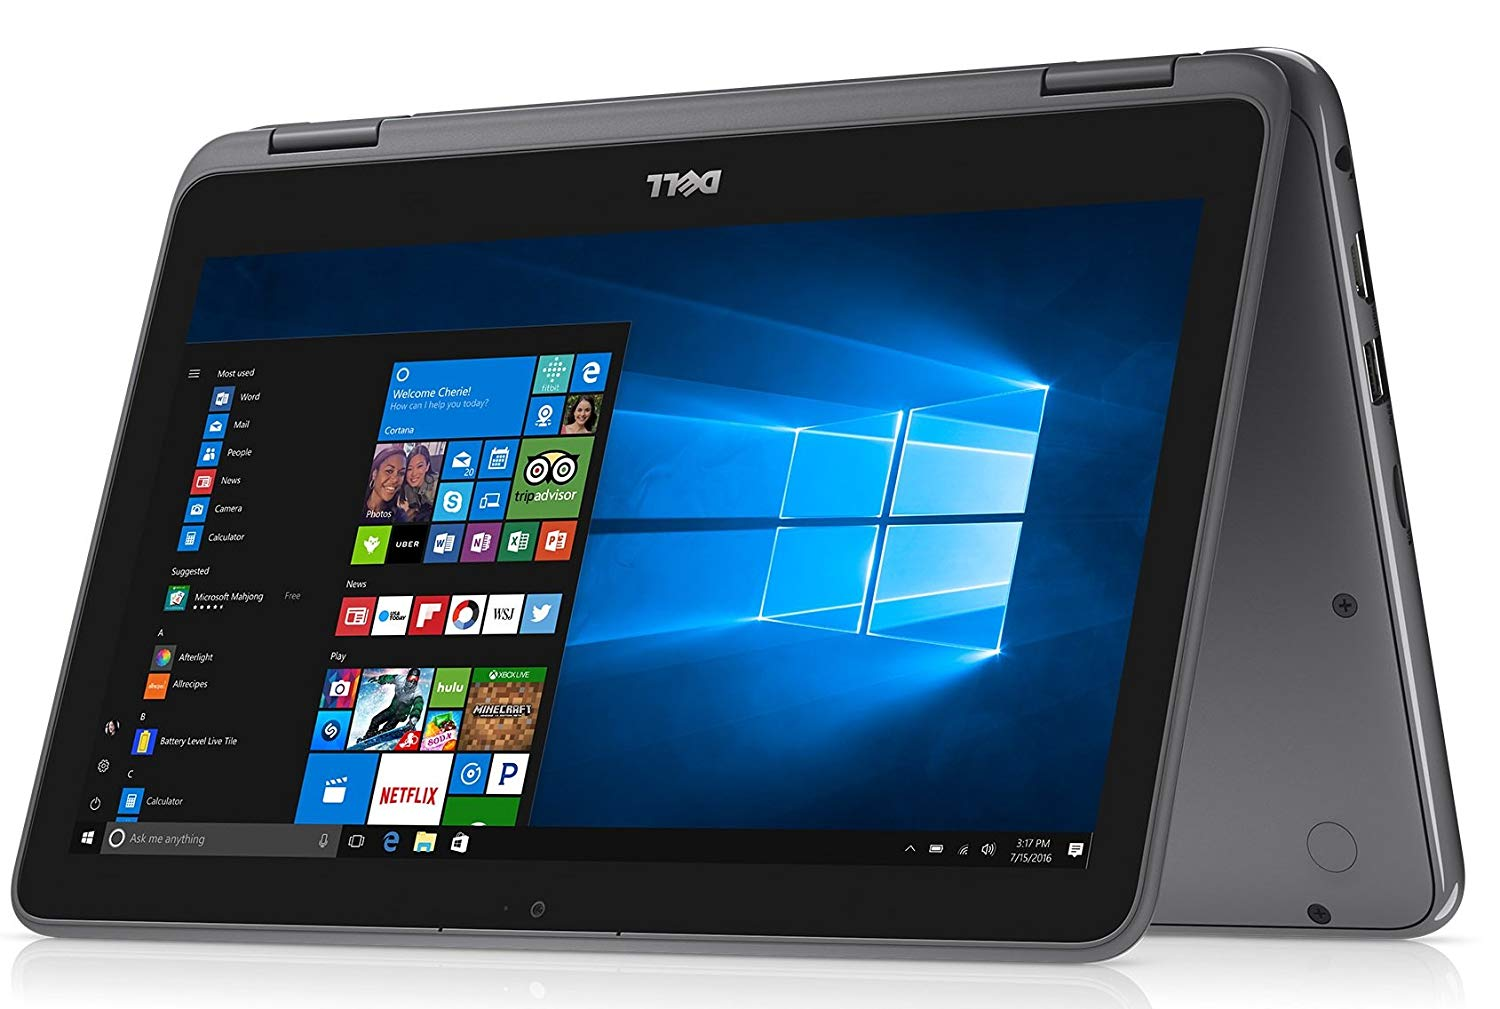 bc8cf0d3b8a9 Newest 2018 Dell Lightweight Inspiron – The power to inspire Laptop  productivity and Windows Tablet convenience converge in one stylish and  versatile device ...